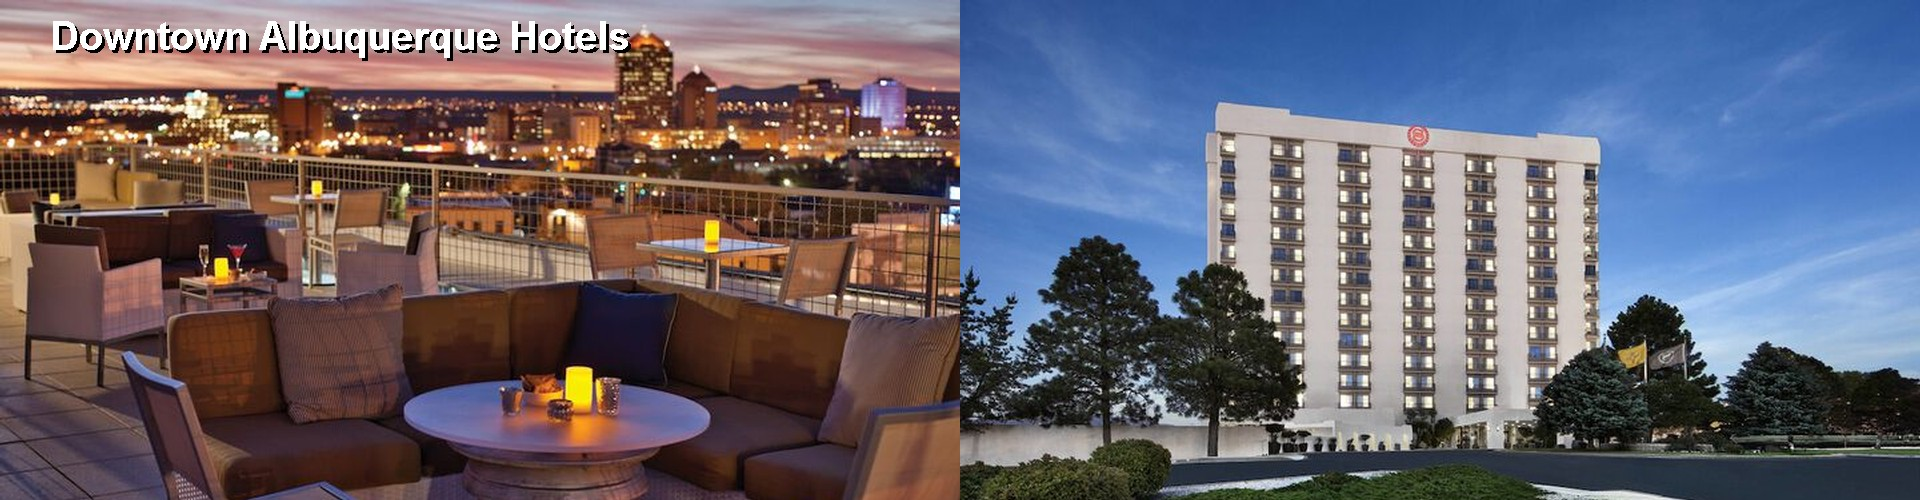 5 Best Hotels near Downtown Albuquerque